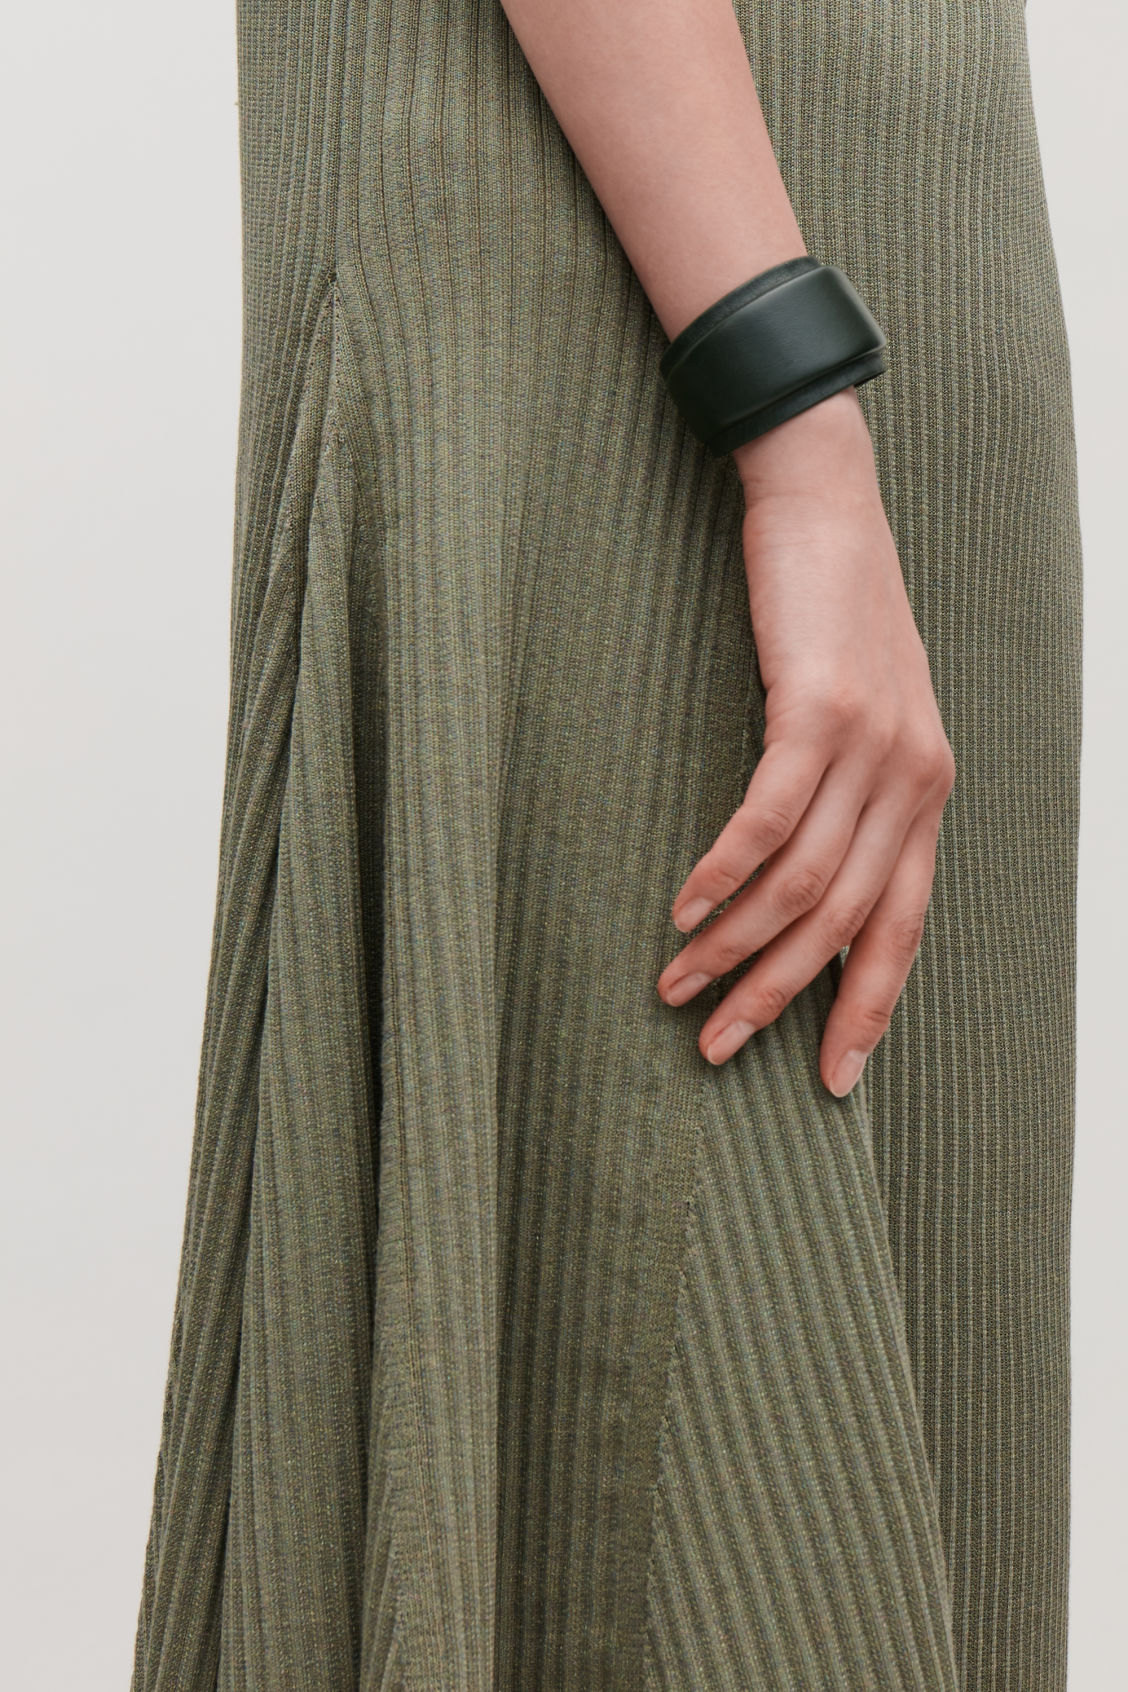 Detailed image of Cos padded two-tone leather cuff in green